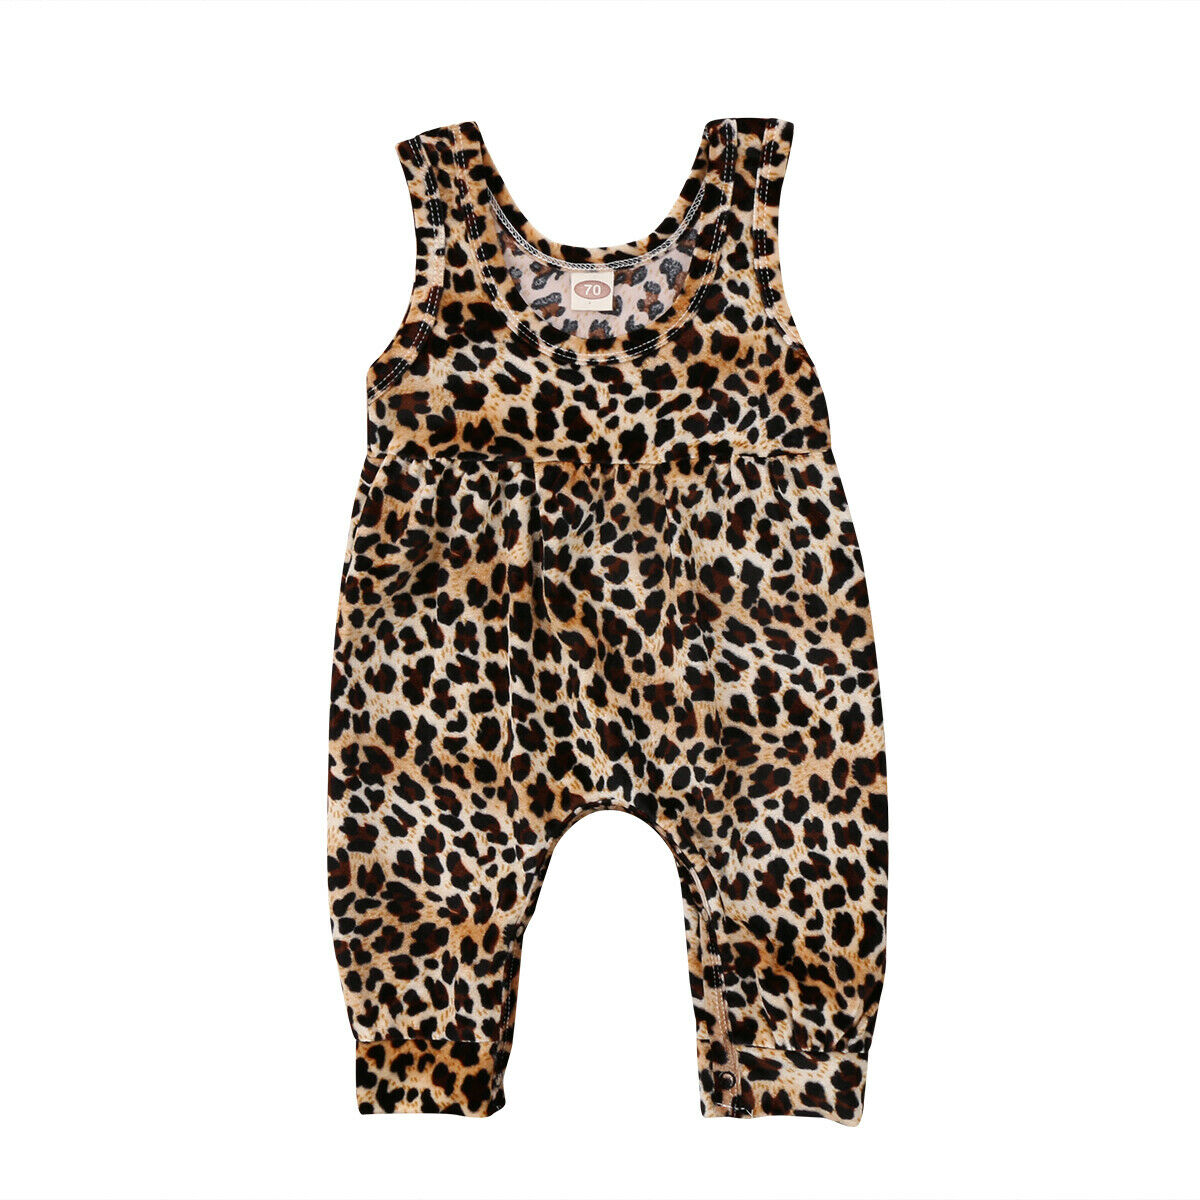 Newborn Kids Baby Girls   Romper   Cotton Leopard Print Causal Jumpsuit Harem Playsuit Clothes Outfits 0-24M